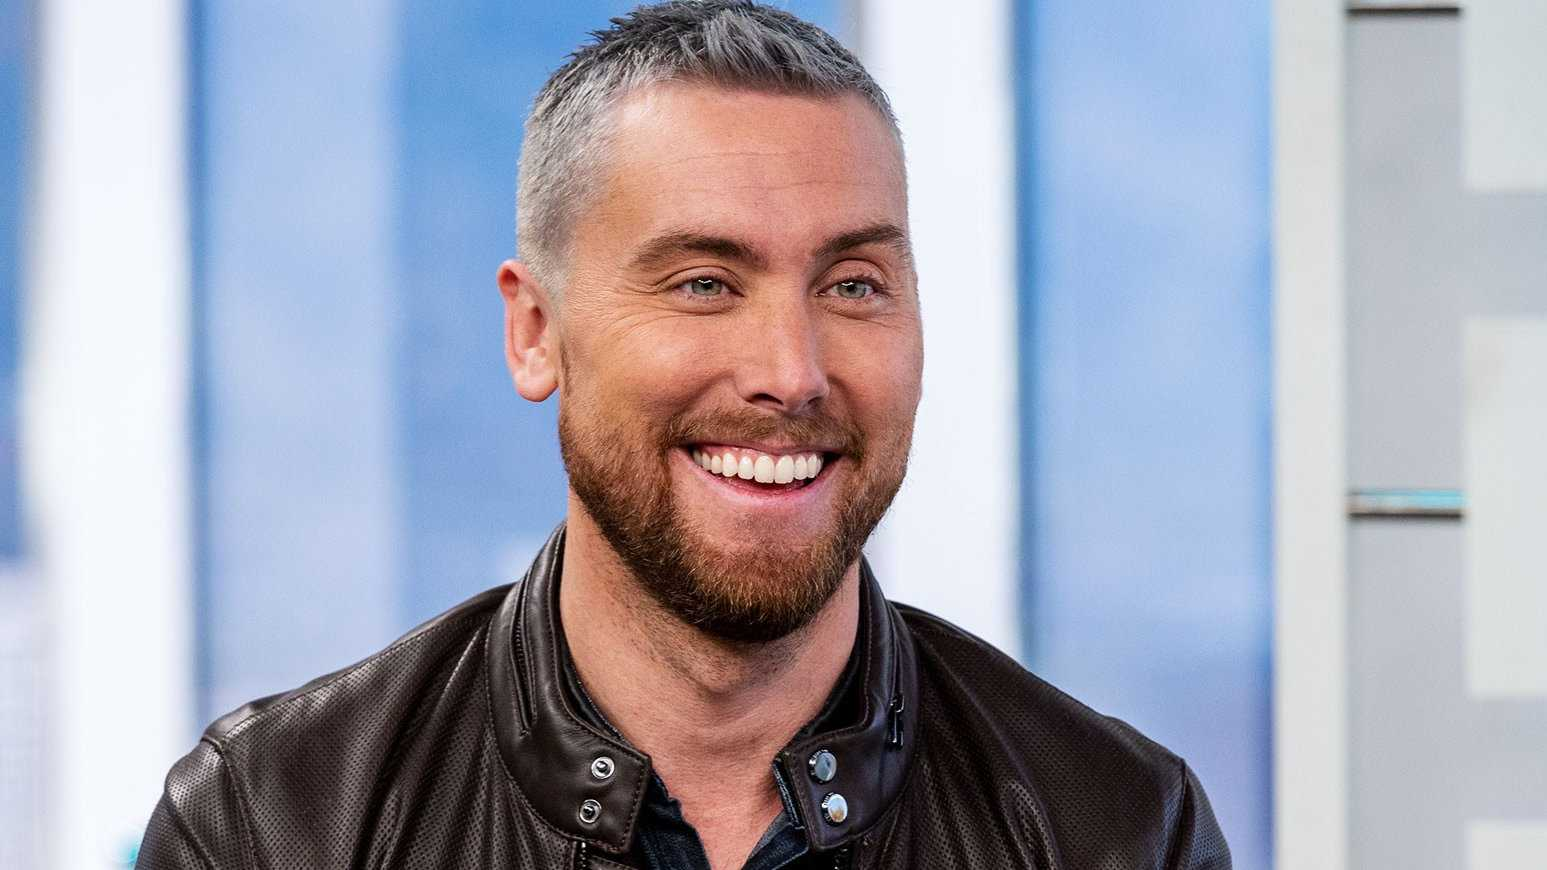 Lance Bass is famous from the band NSYNC but is also a well-known actor and LGBTQ activist now